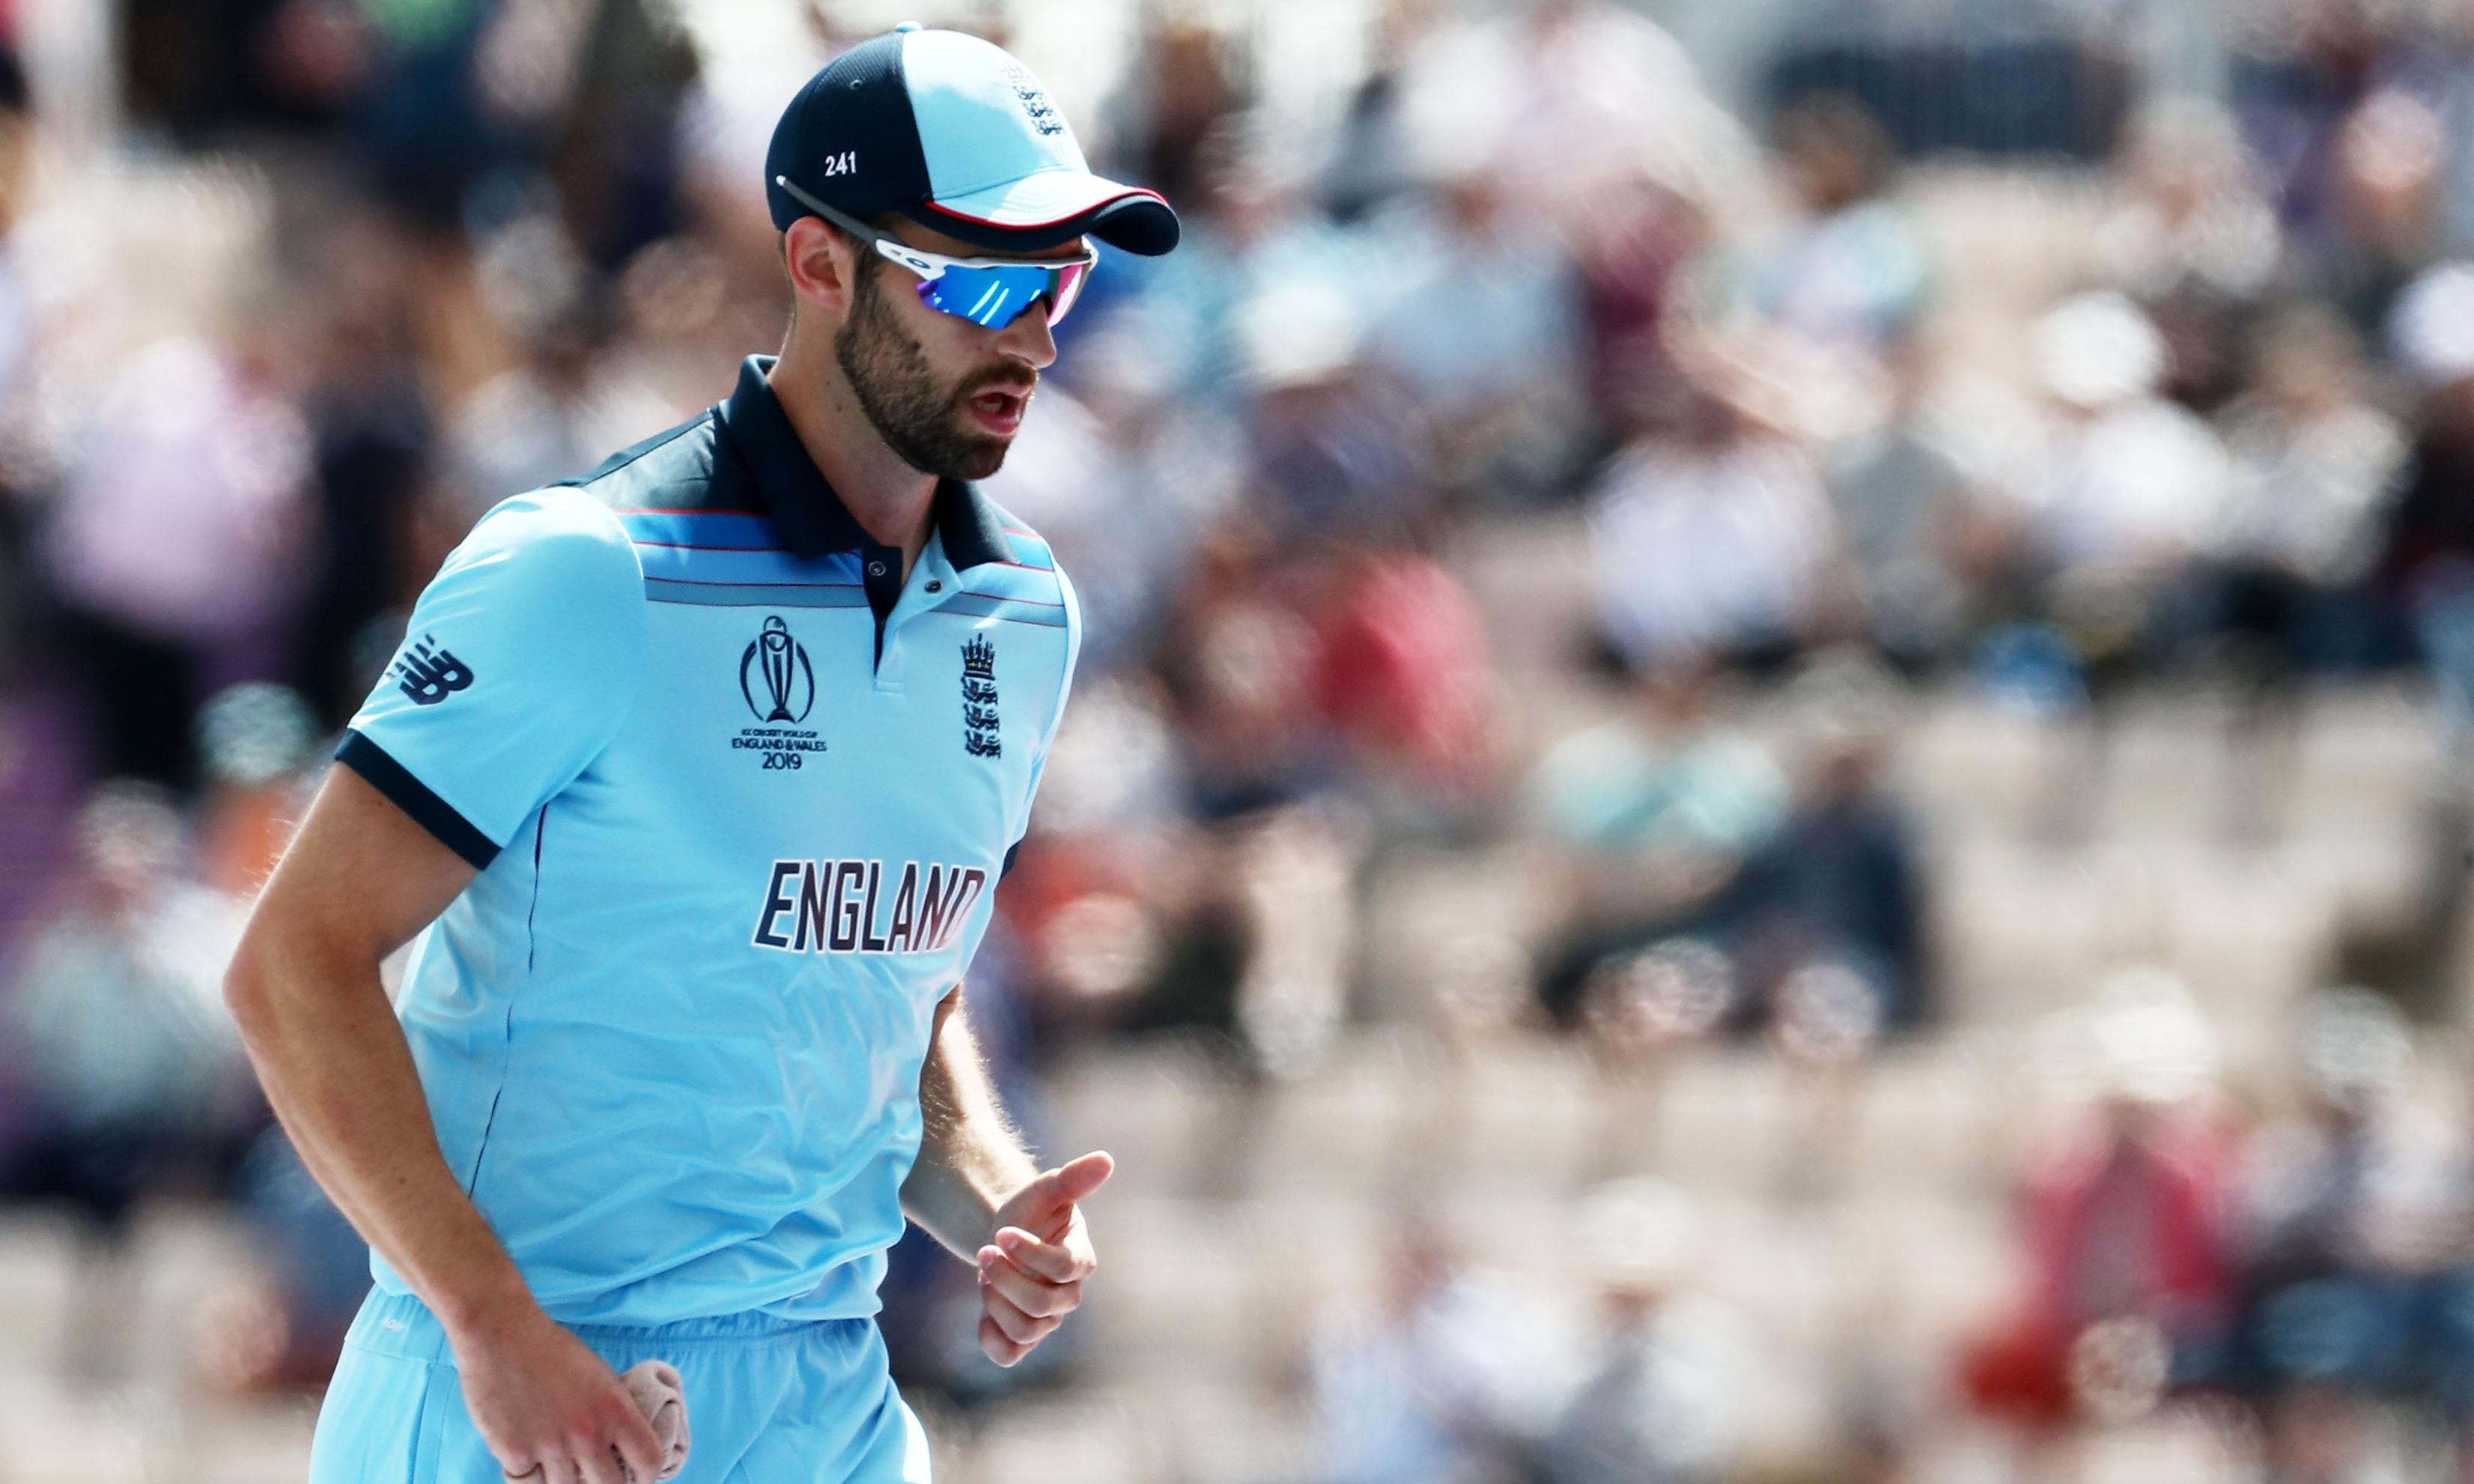 Mark Wood to wait on scan after injury in England's World Cup warm-up loss